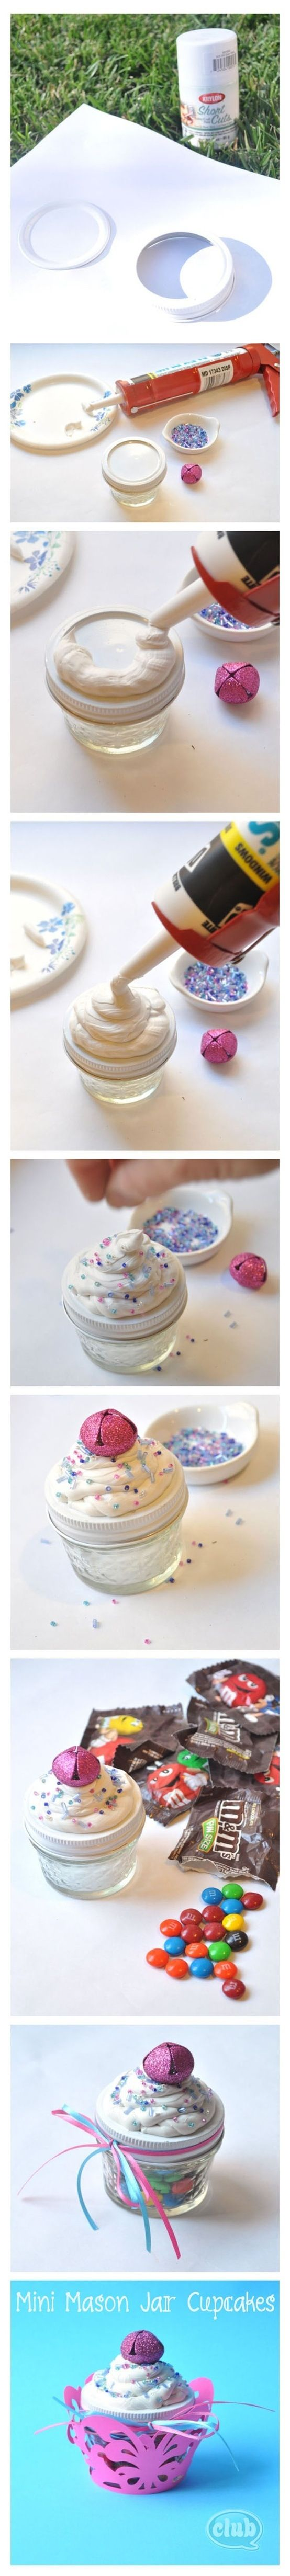 Mason jar cupcakes- change the colors depending on the season and attach a cute tag to the ribbon too.